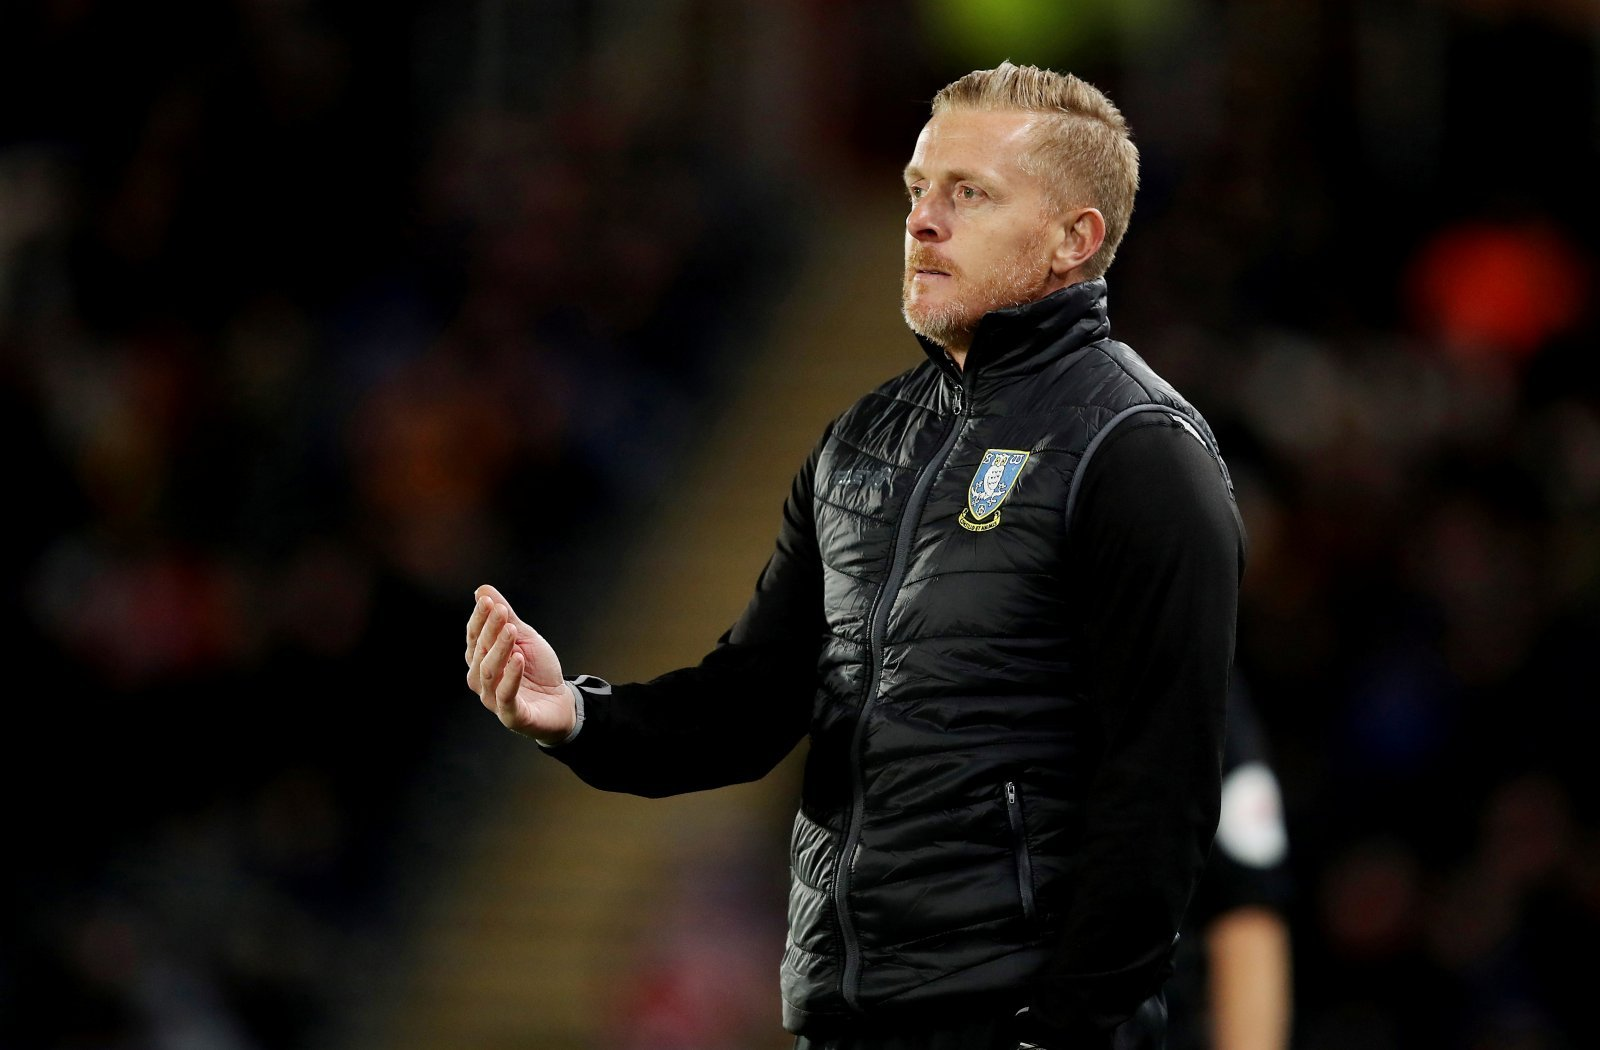 Sheffield Wednesday: Fans react to Garry Monk's comments after Hull City defeat